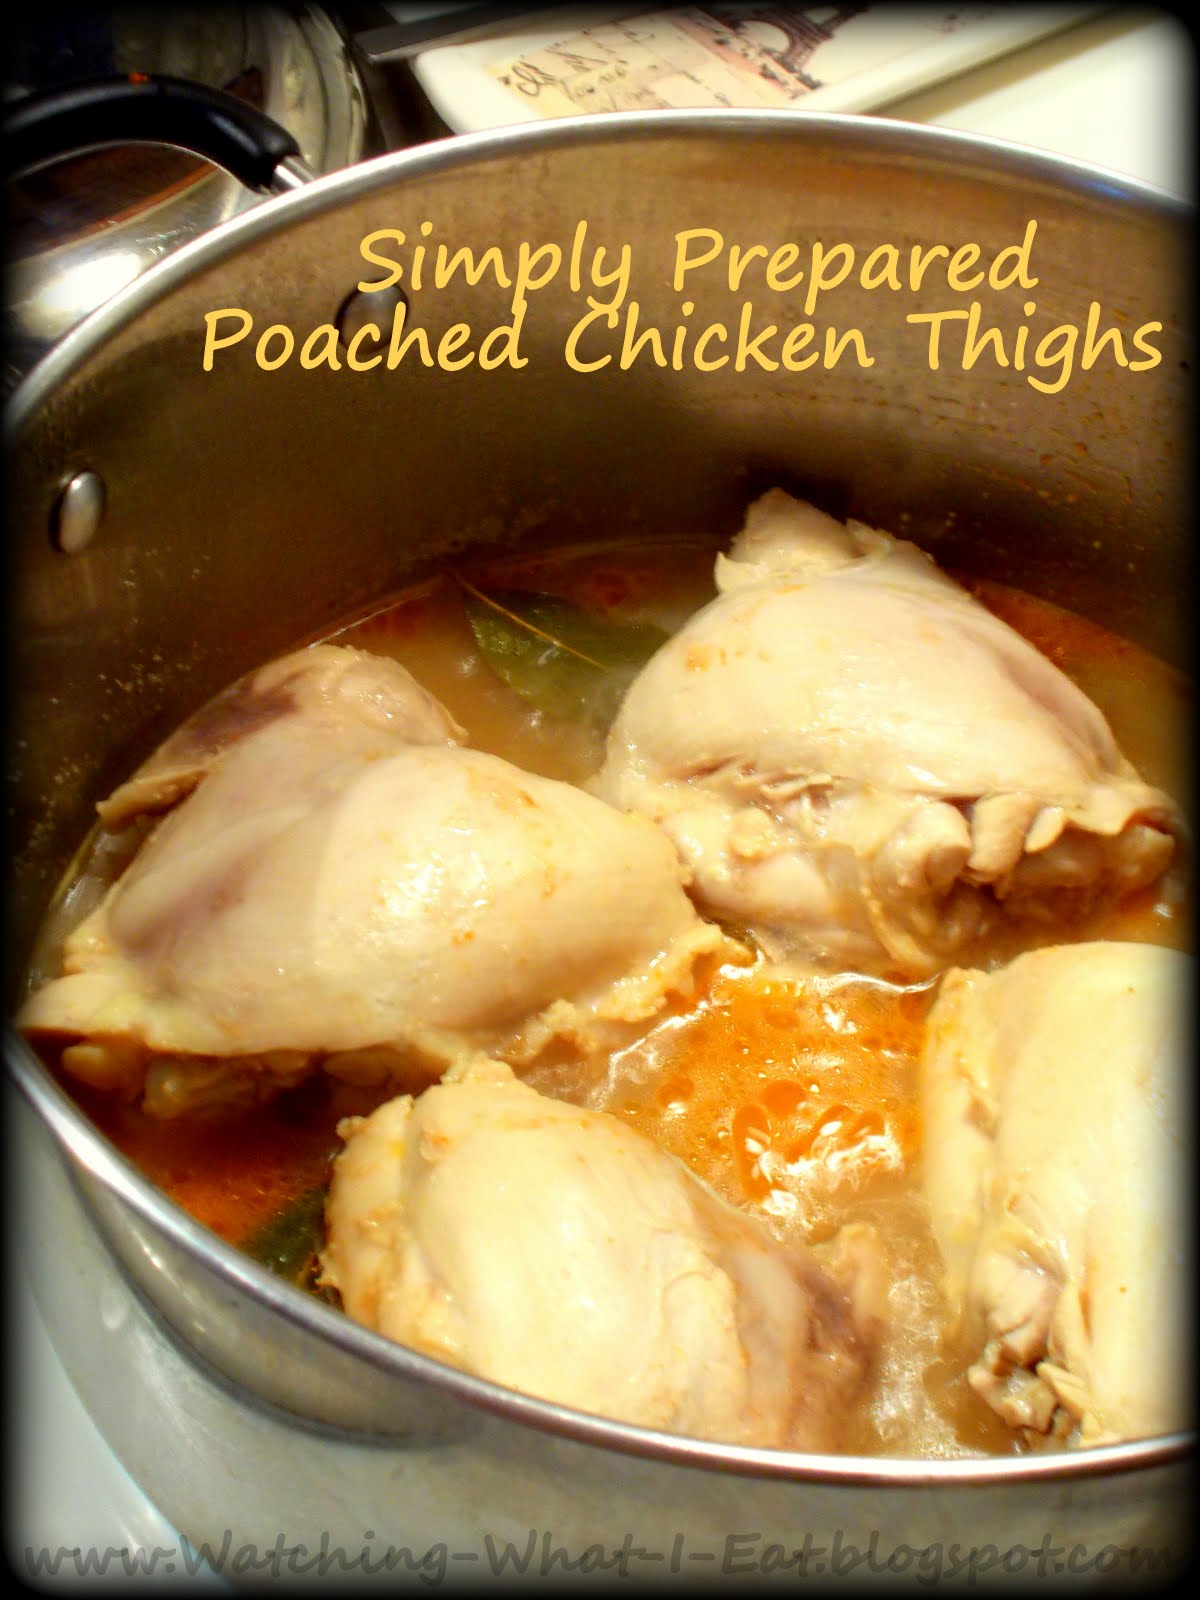 Watching What I Eat: Simply Prepared Poached Chicken Thighs